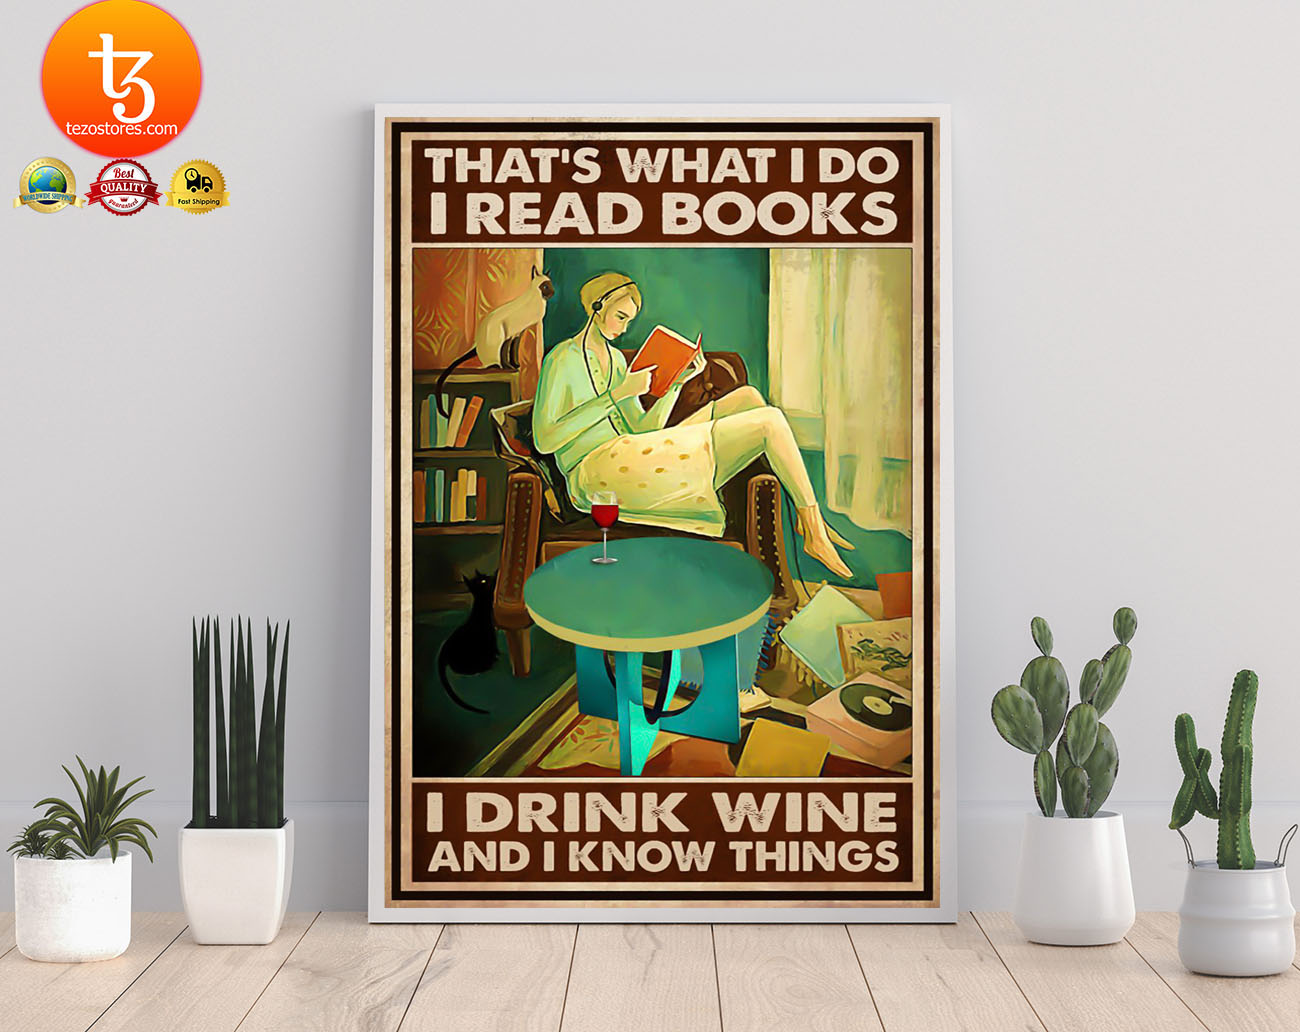 That's what I do I read books I drink wine and I know things poster 19